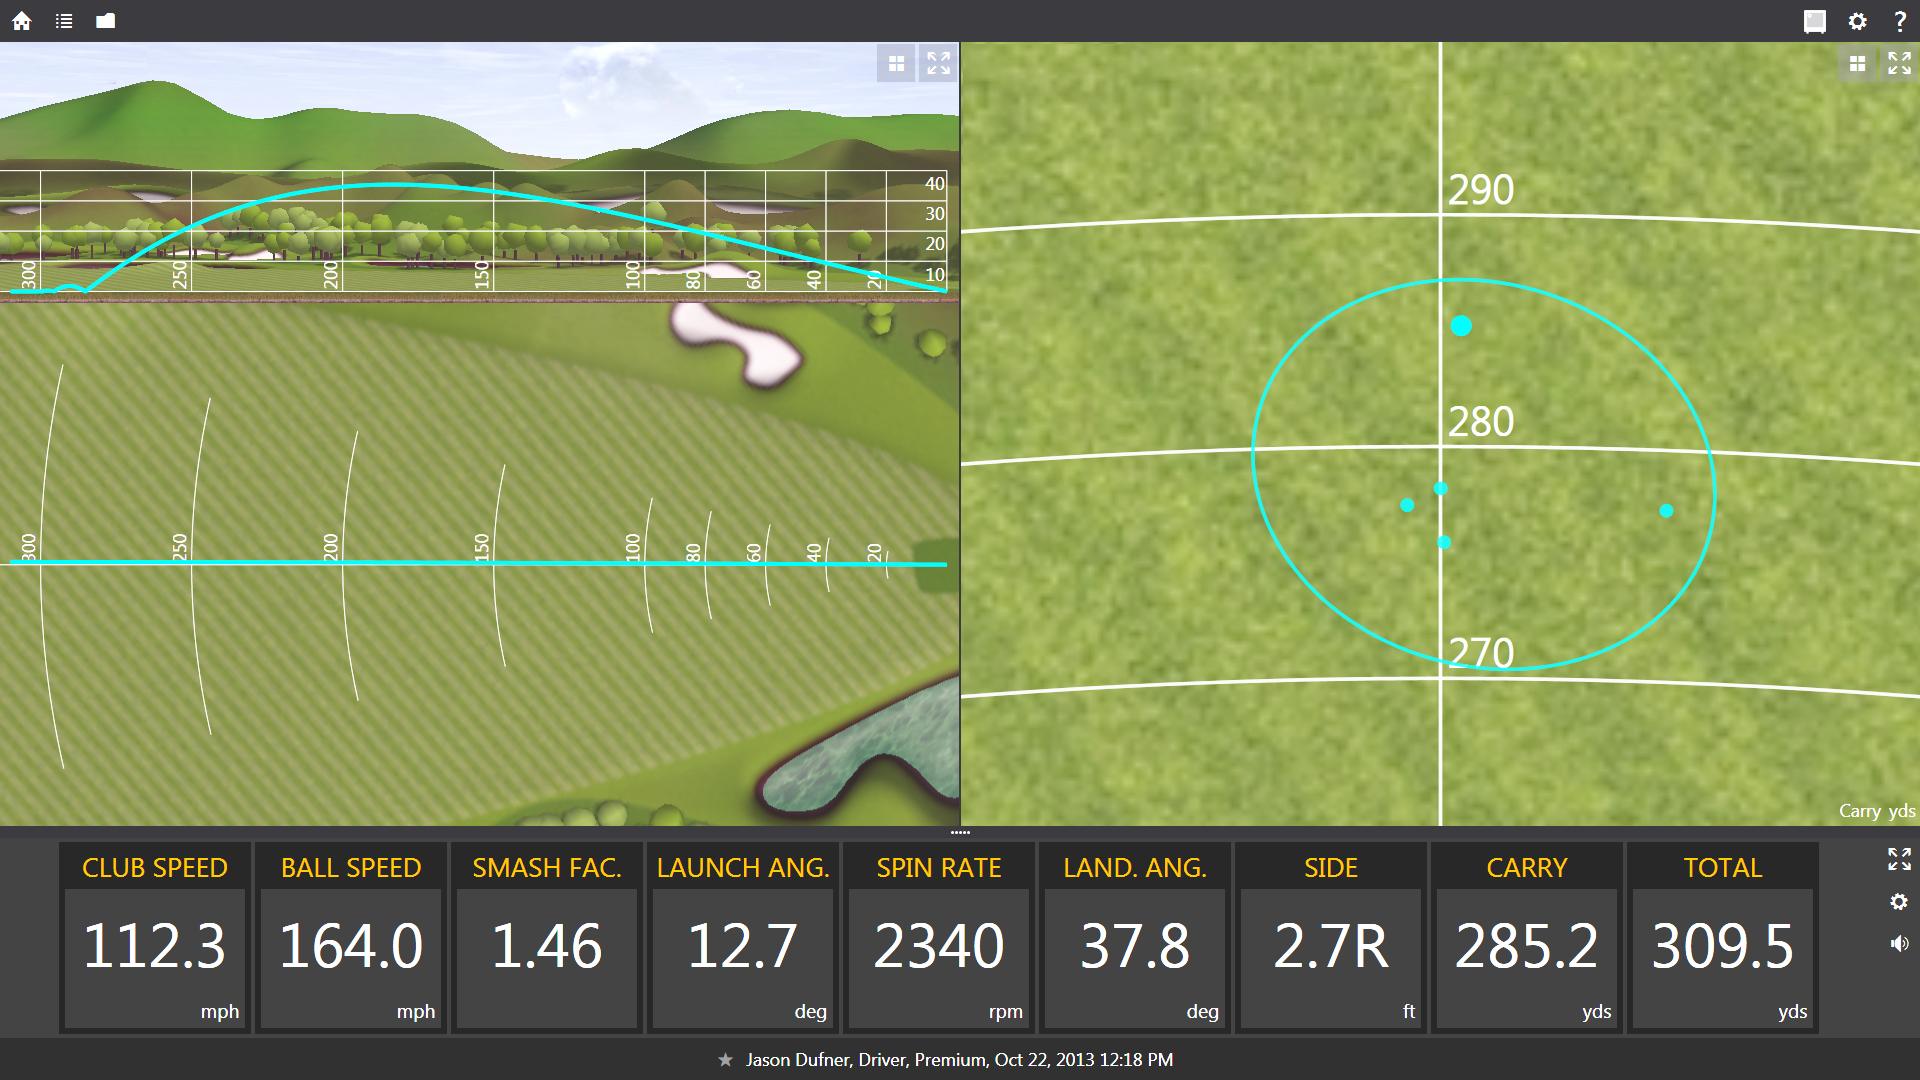 Jason Dufner Trajectory Dispersion